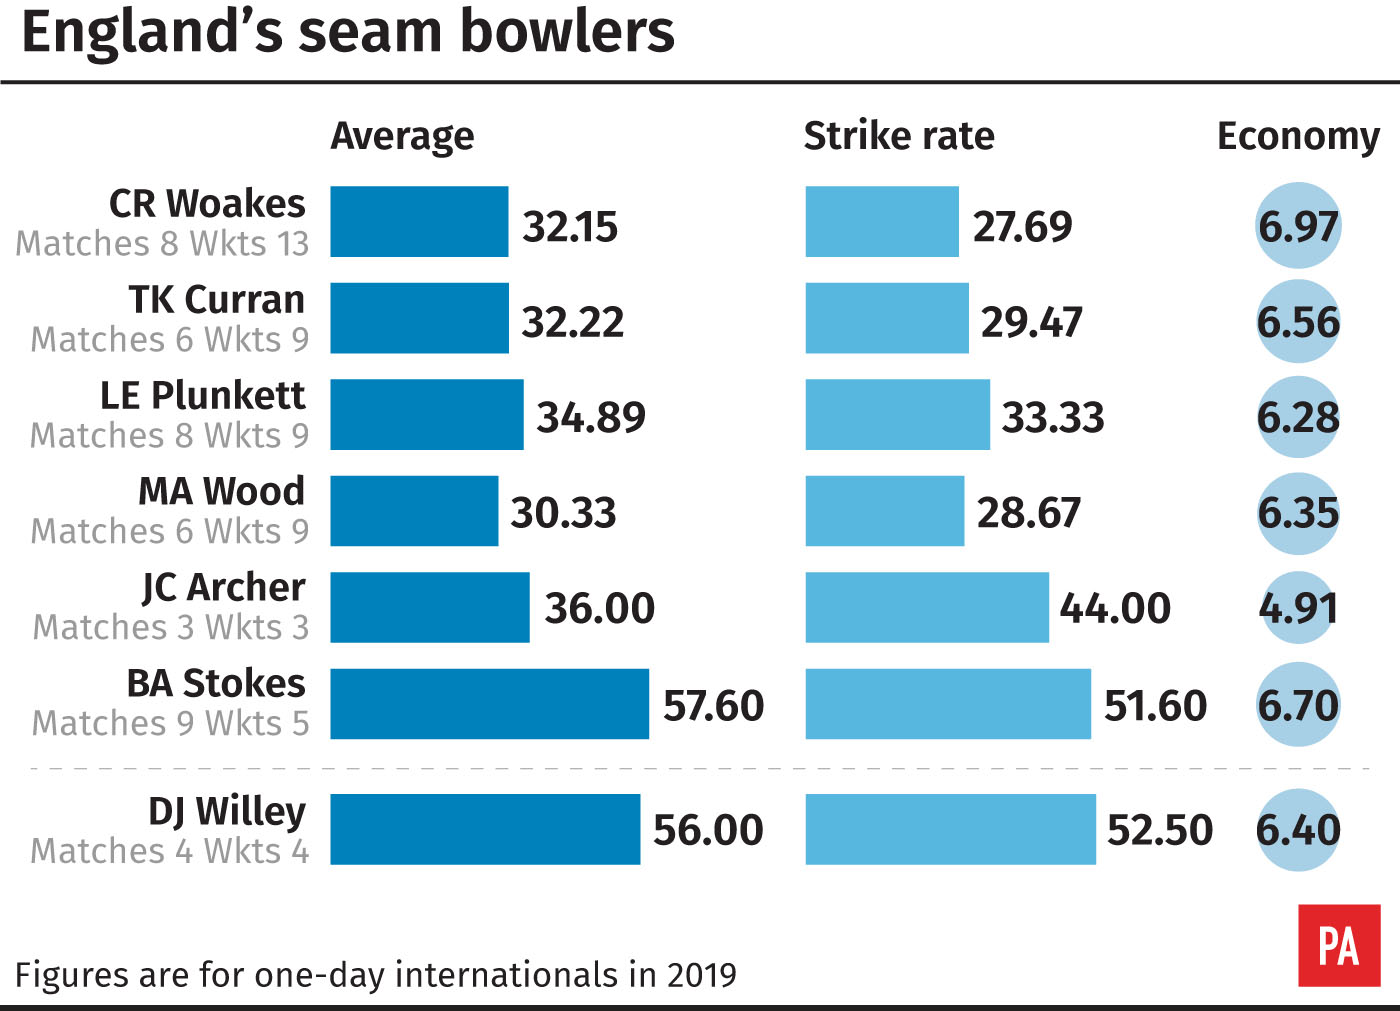 England's ODI seamers in 2019